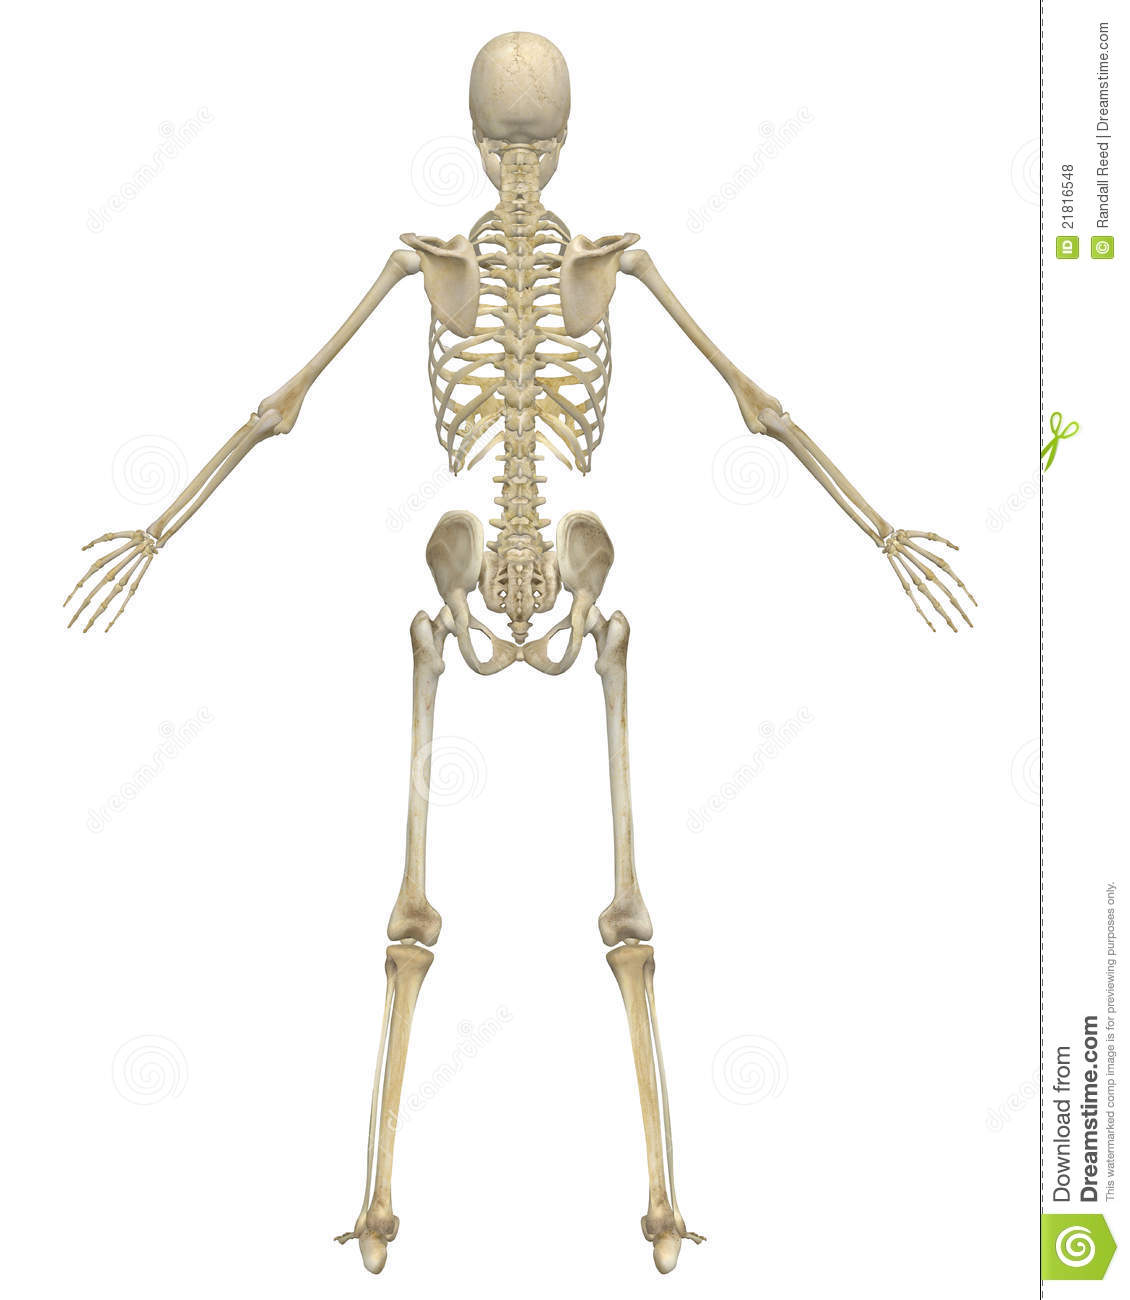 human skeleton anatomy rear view royalty free stock photos - image, Skeleton